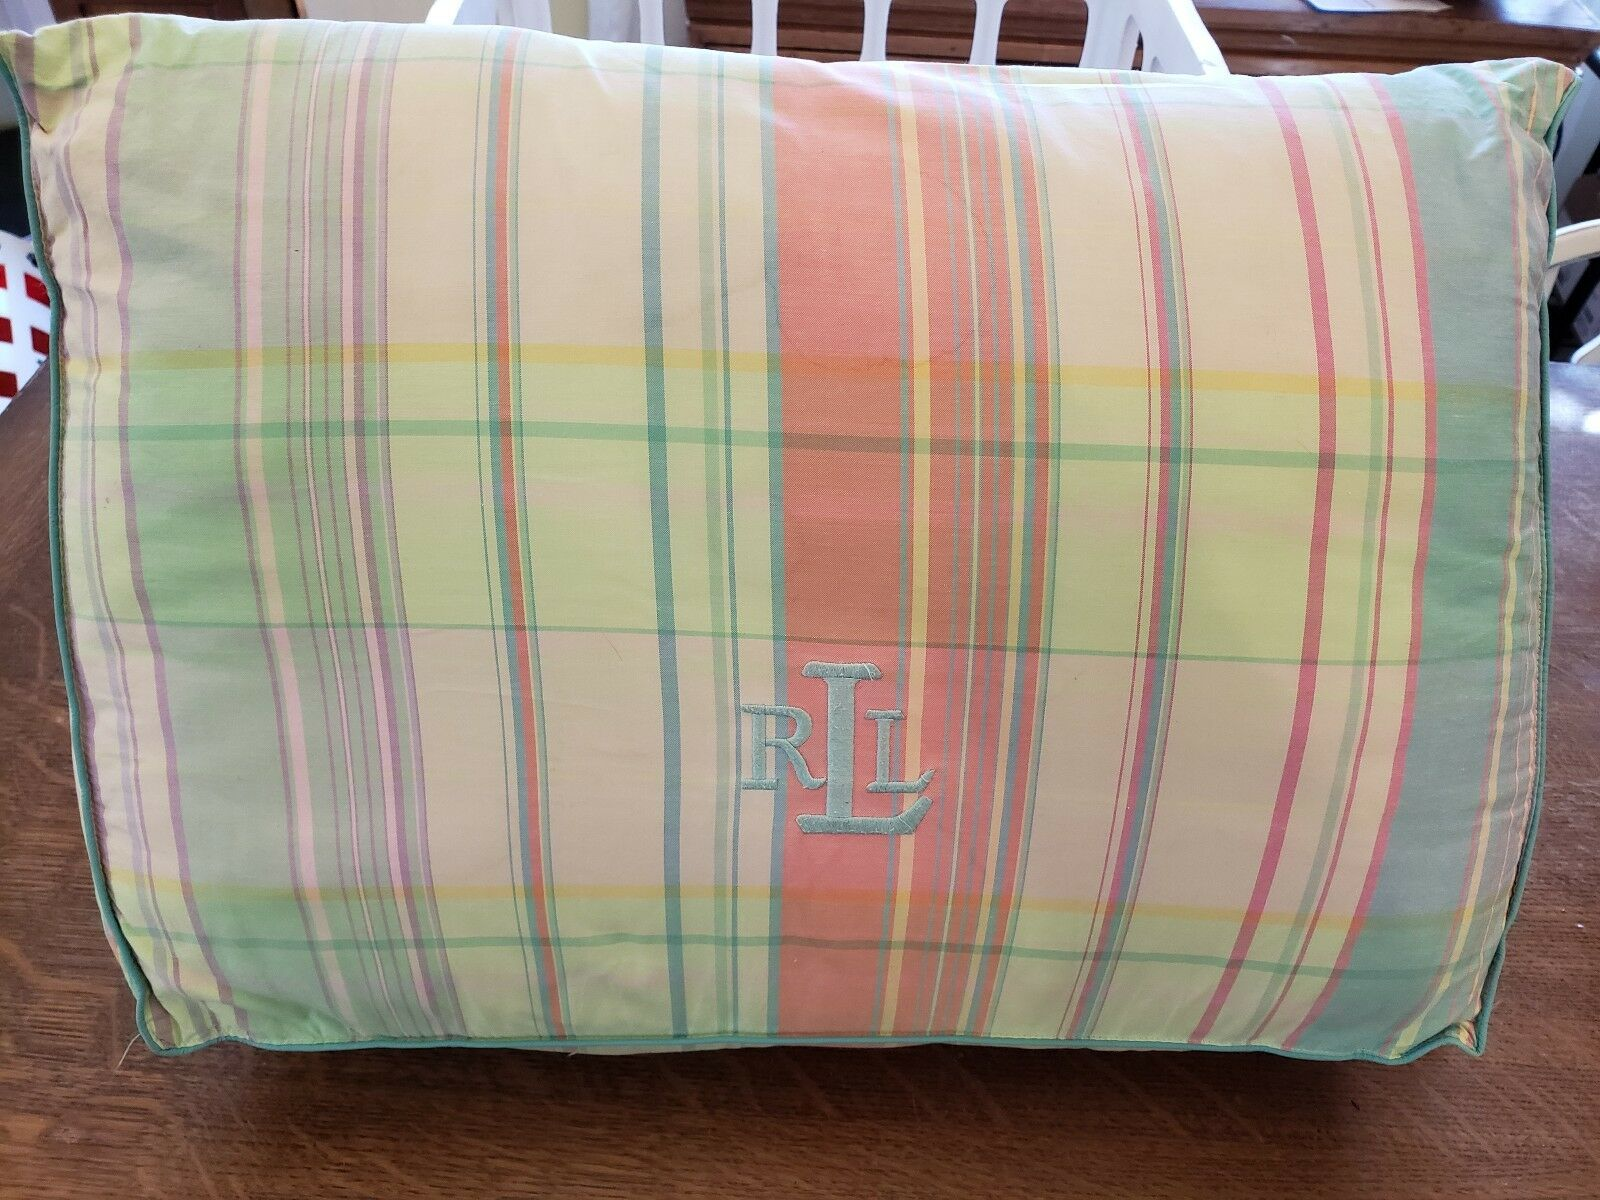 RALPH LAUREN pastels Madras plaid monogram RLL wedge pillow 20x15x5